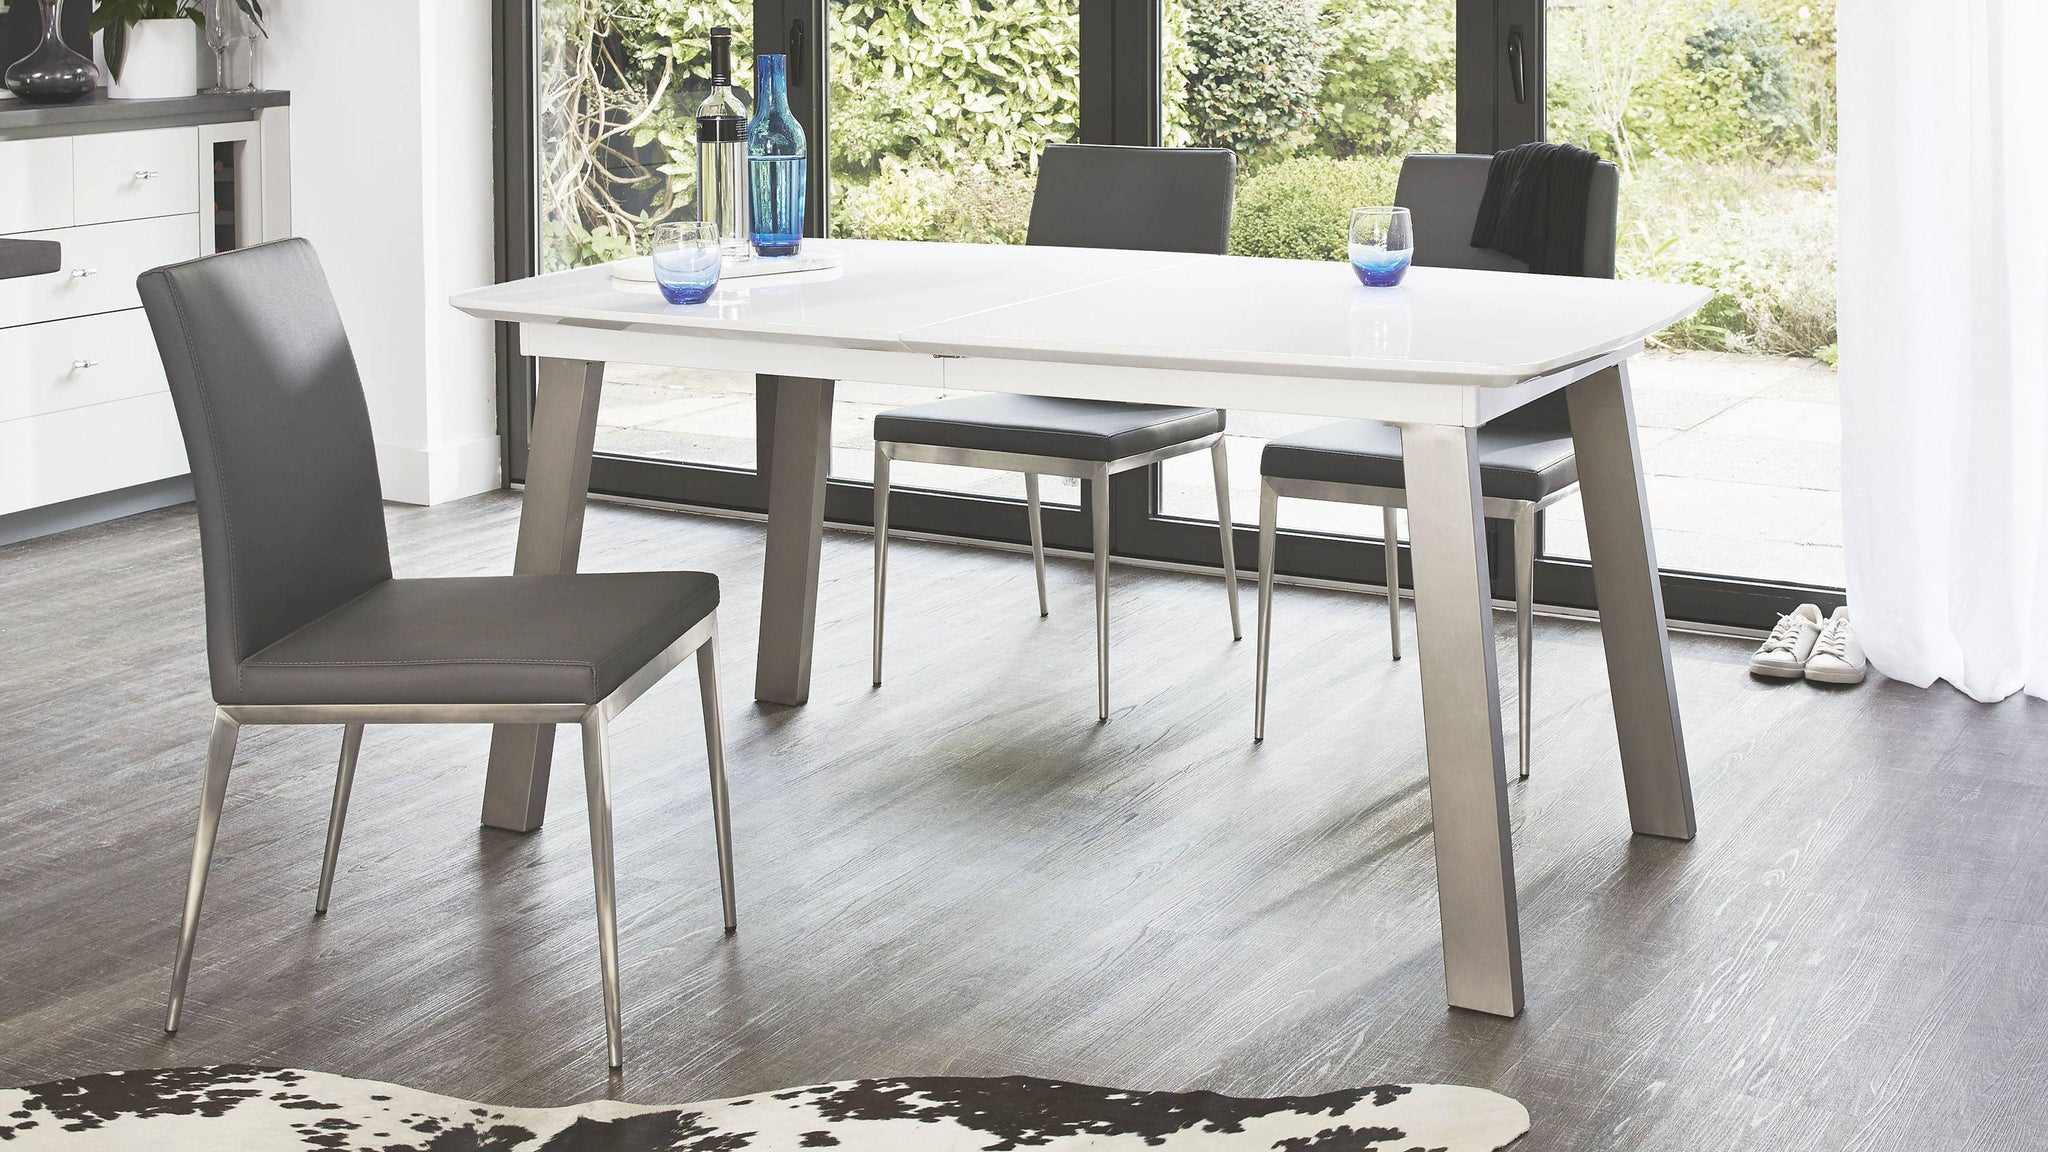 White Gloss Extending Dining Table with Brushed Metal Legs